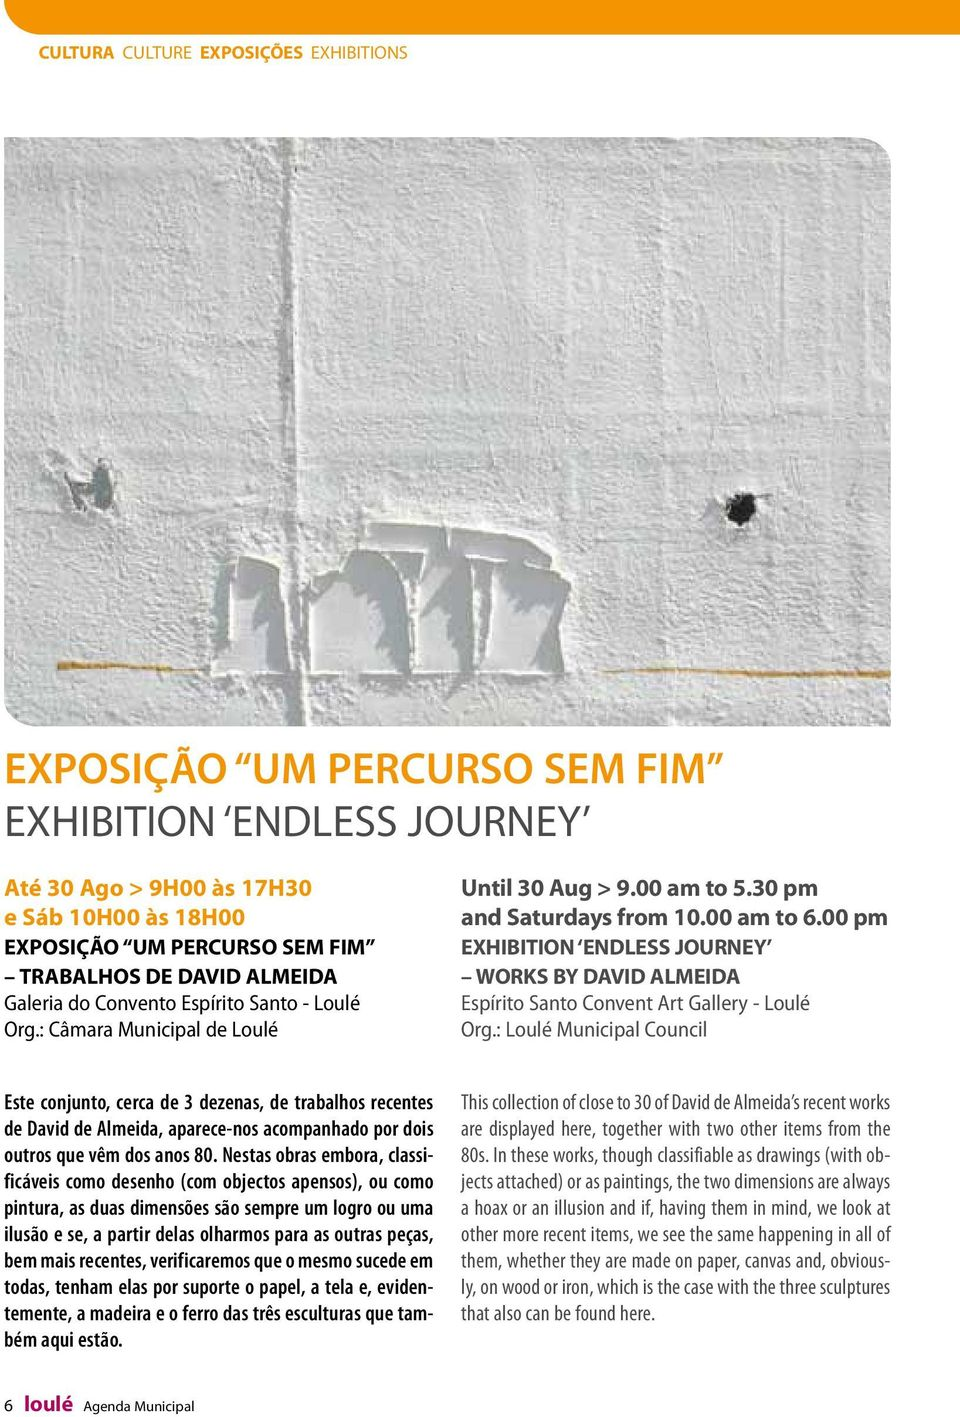 00 pm EXHIBITION ENDLESS JOURNEY WORKS BY DAVID ALMEIDA Espírito Santo Convent Art Gallery - Loulé Org.